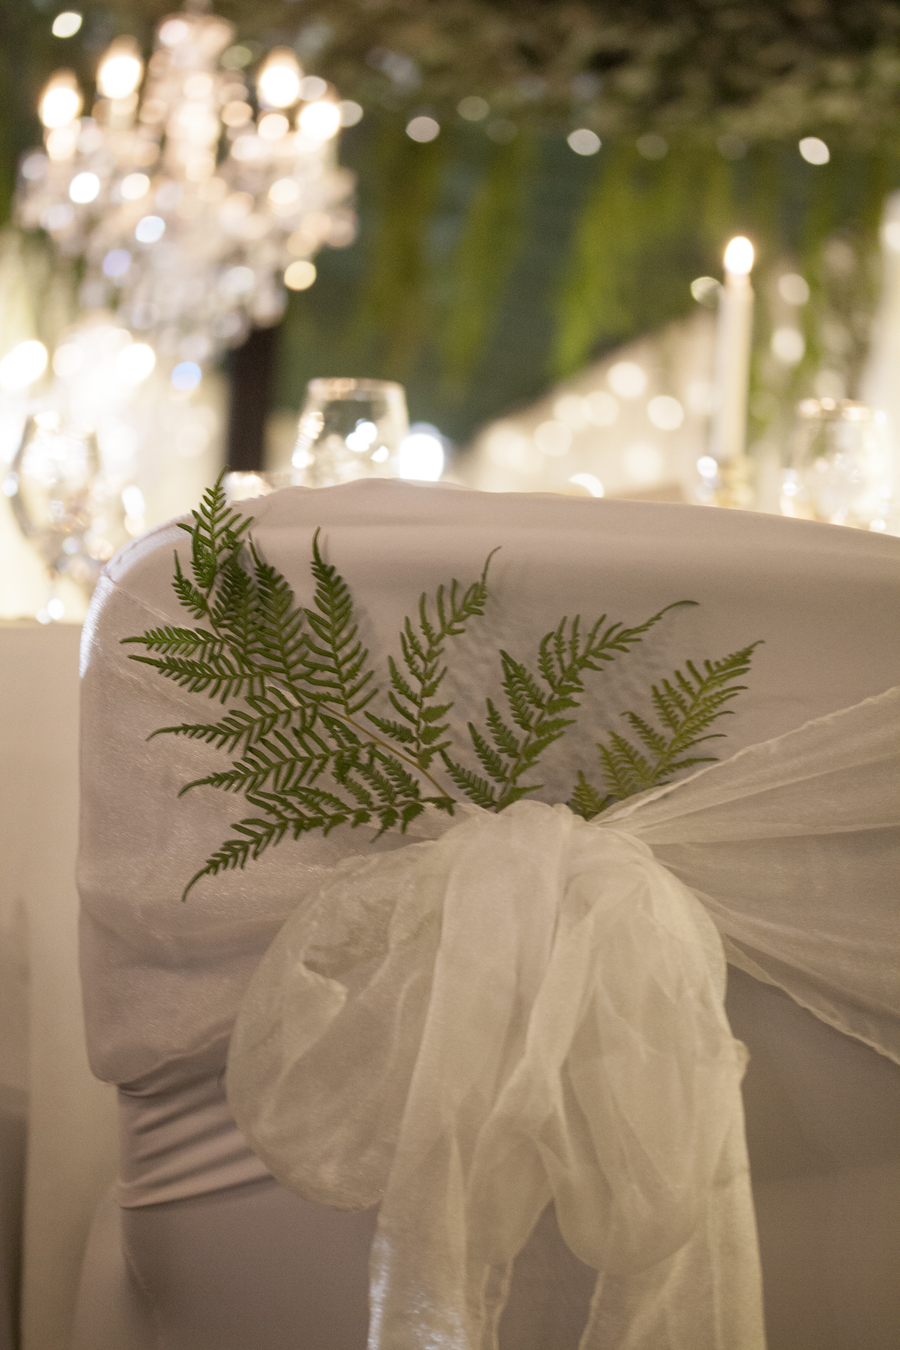 Style my day - Wedding reception - Indoor rainforest - Romantic Lighting